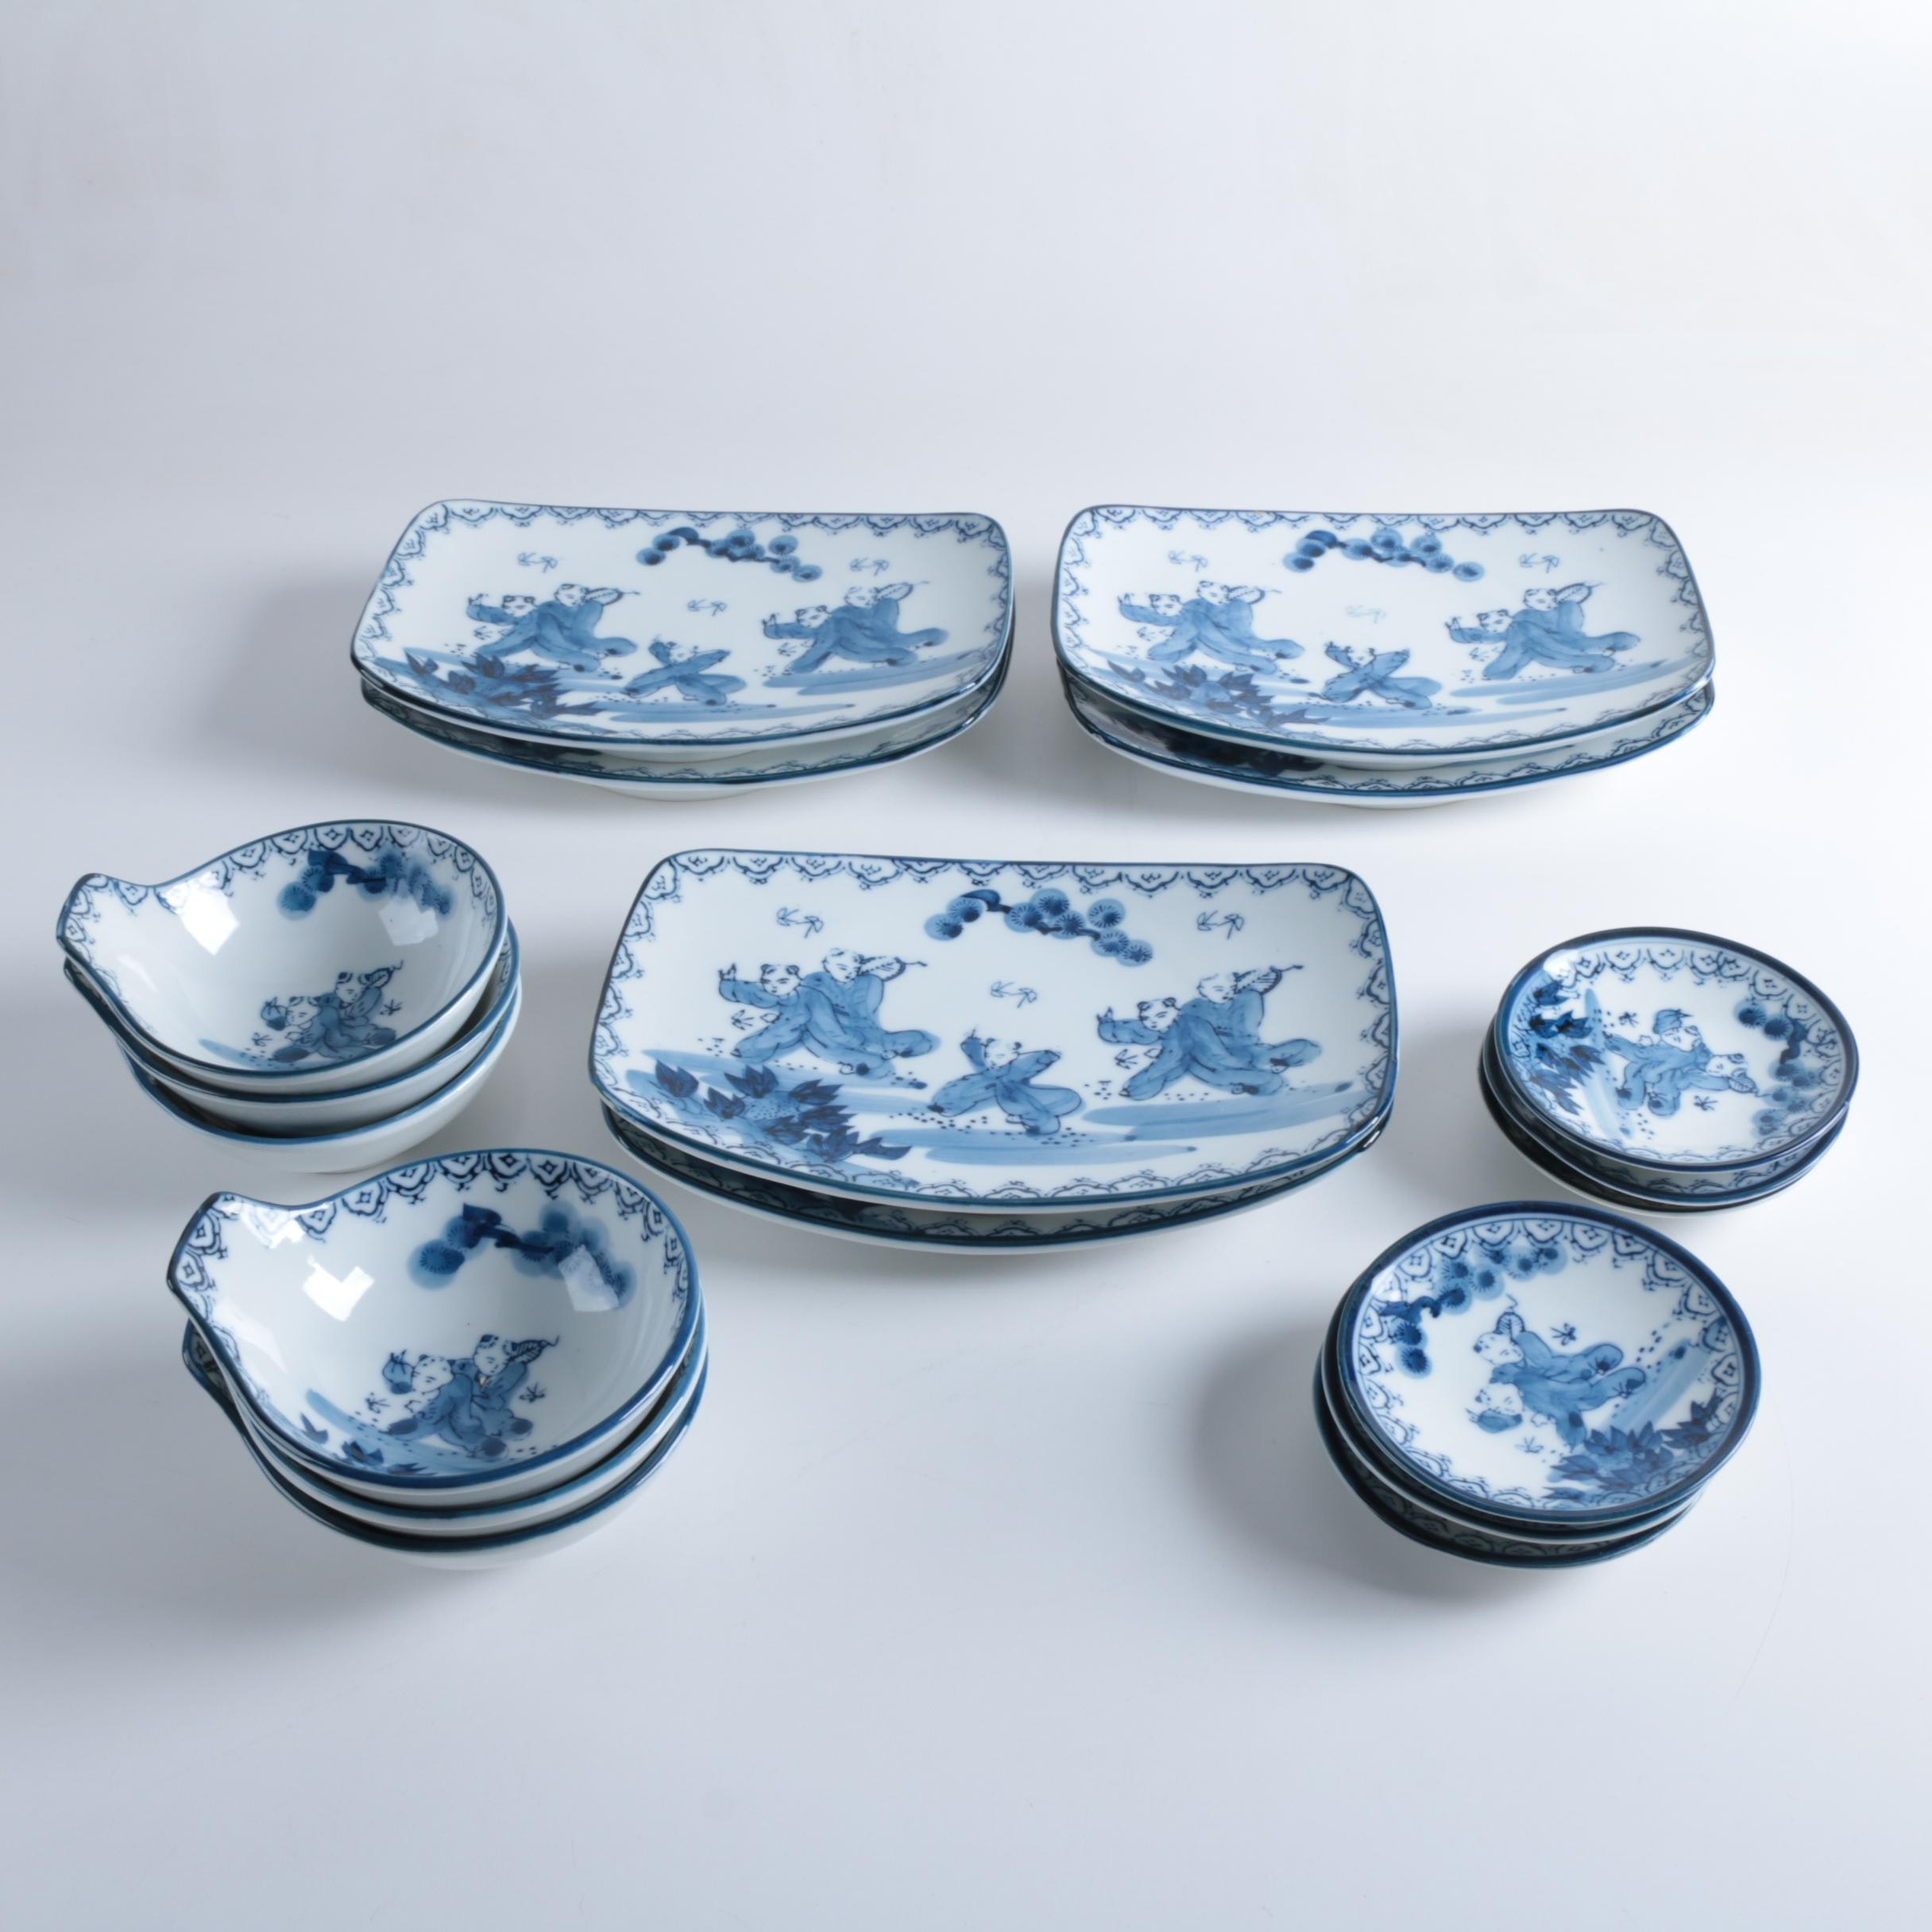 Contemporary Chinese Porcelain Tableware ... & Contemporary Chinese Porcelain Tableware : EBTH